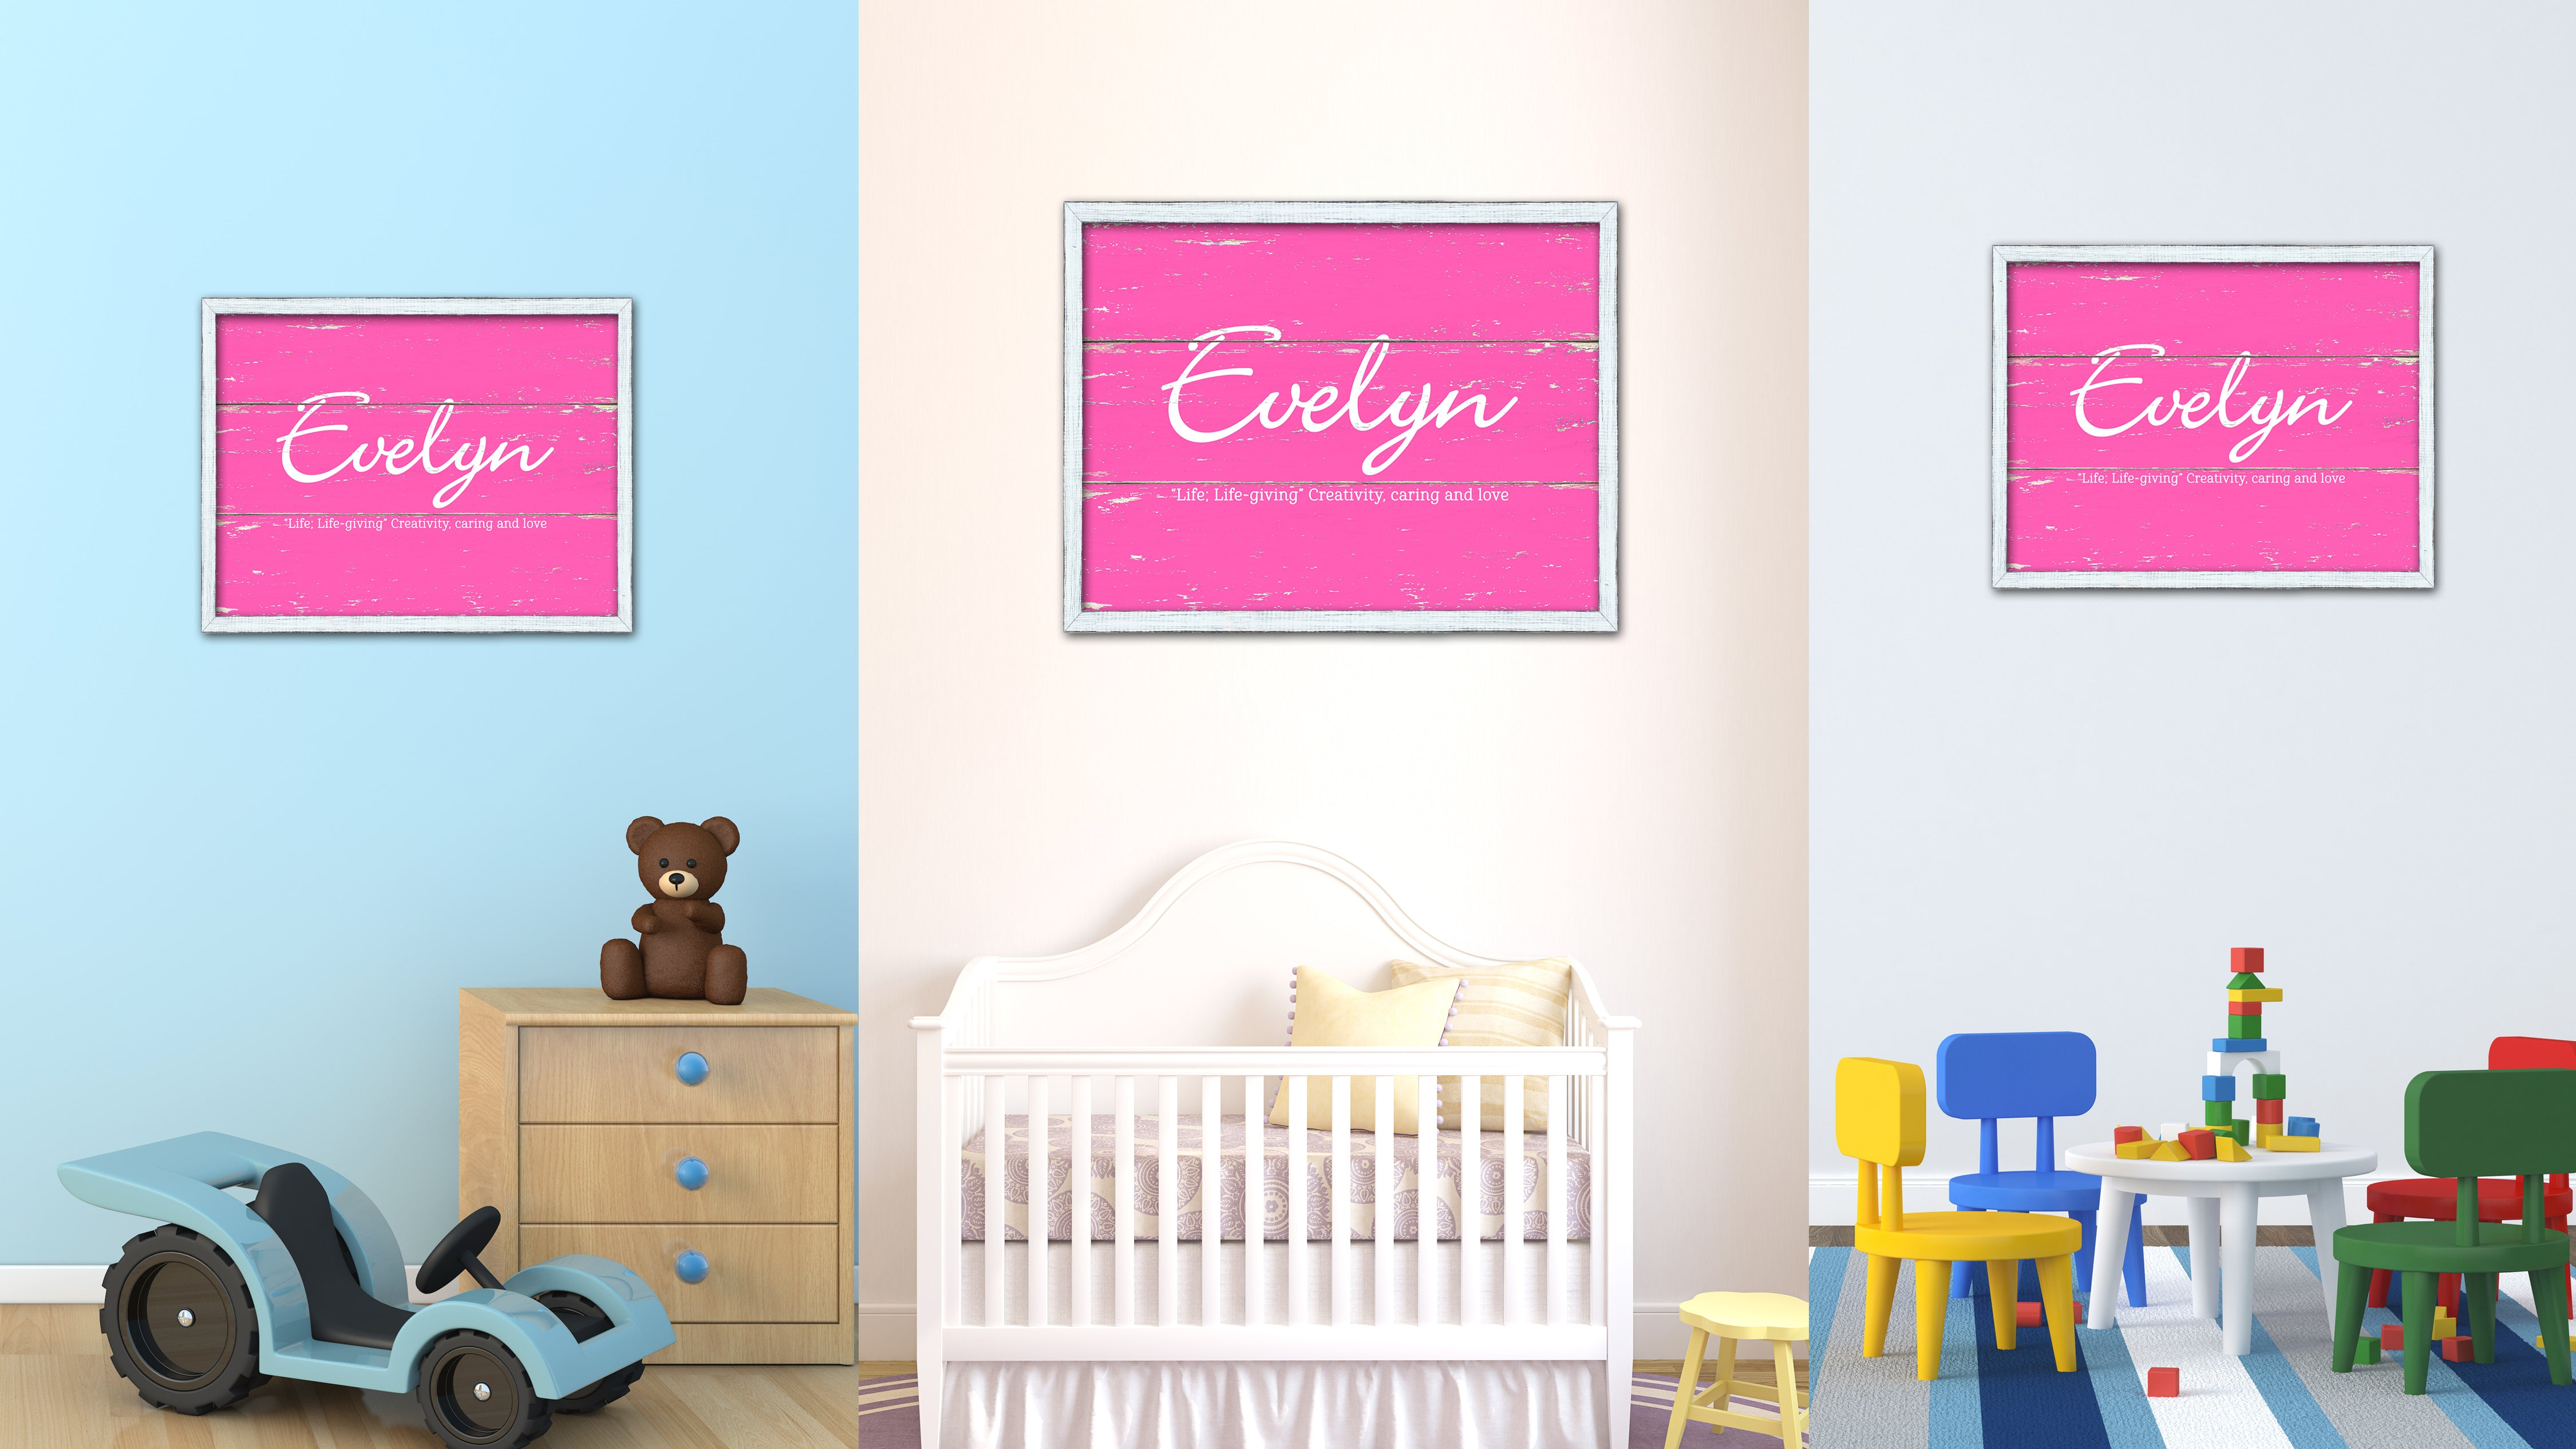 Evelyn Name Plate White Wash Wood Frame Canvas Print Boutique Cottage Decor Shabby Chic